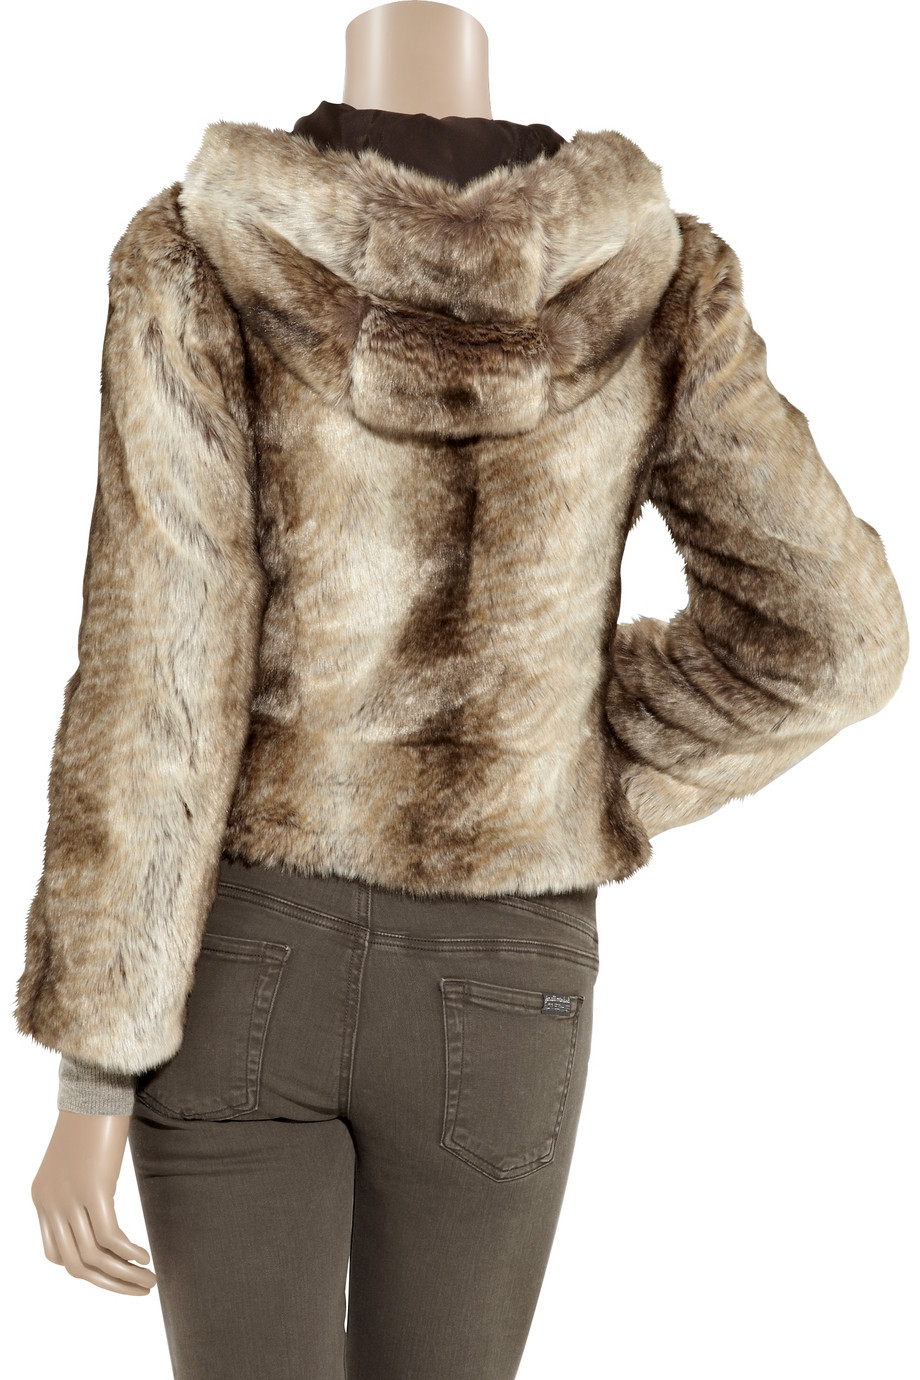 7648821f373c Juicy Couture Rex Faux Fur Hooded Jacket in Brown - Lyst